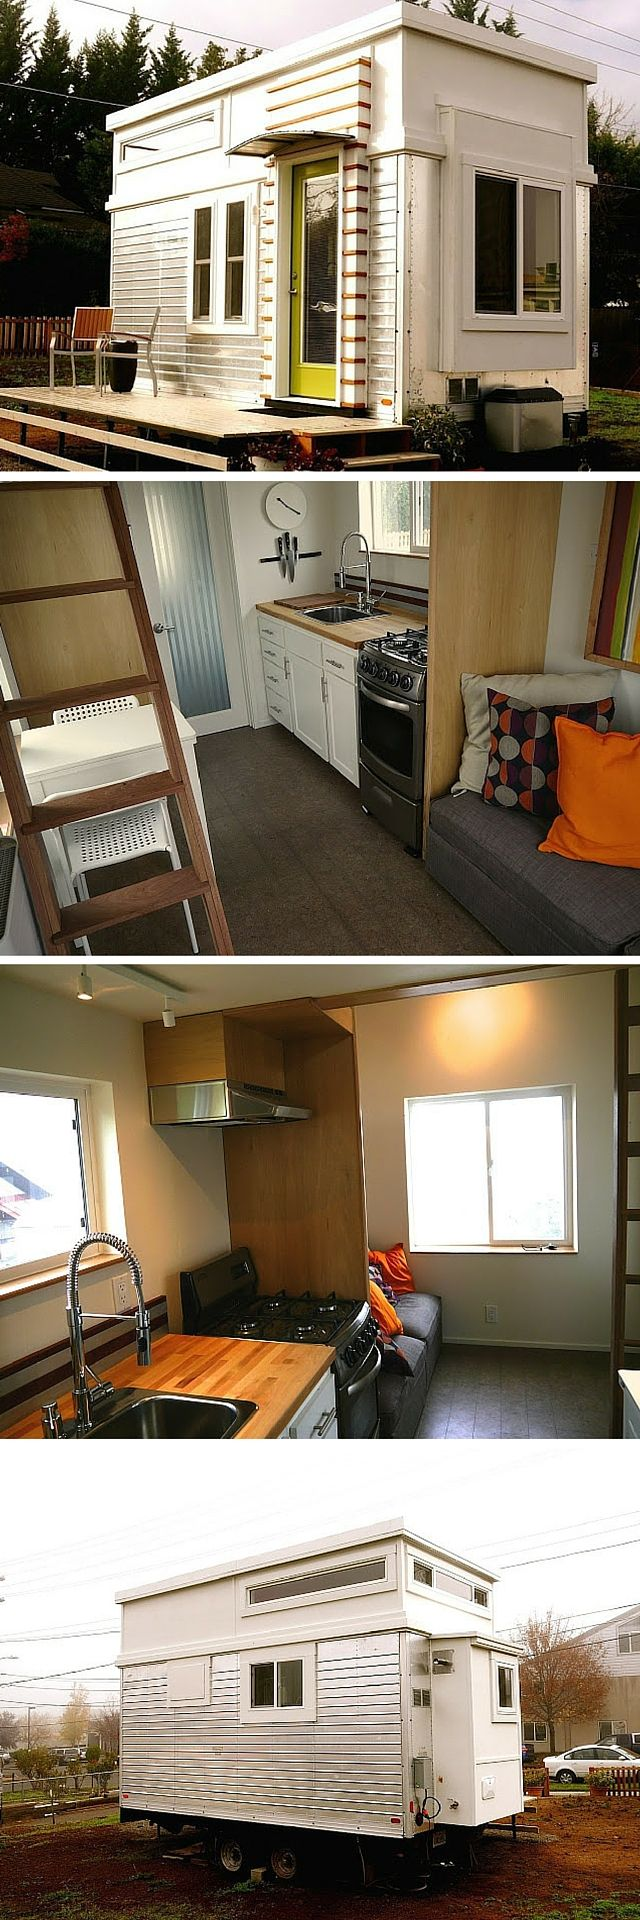 17 Best ideas about Smallest House on Pinterest North wales